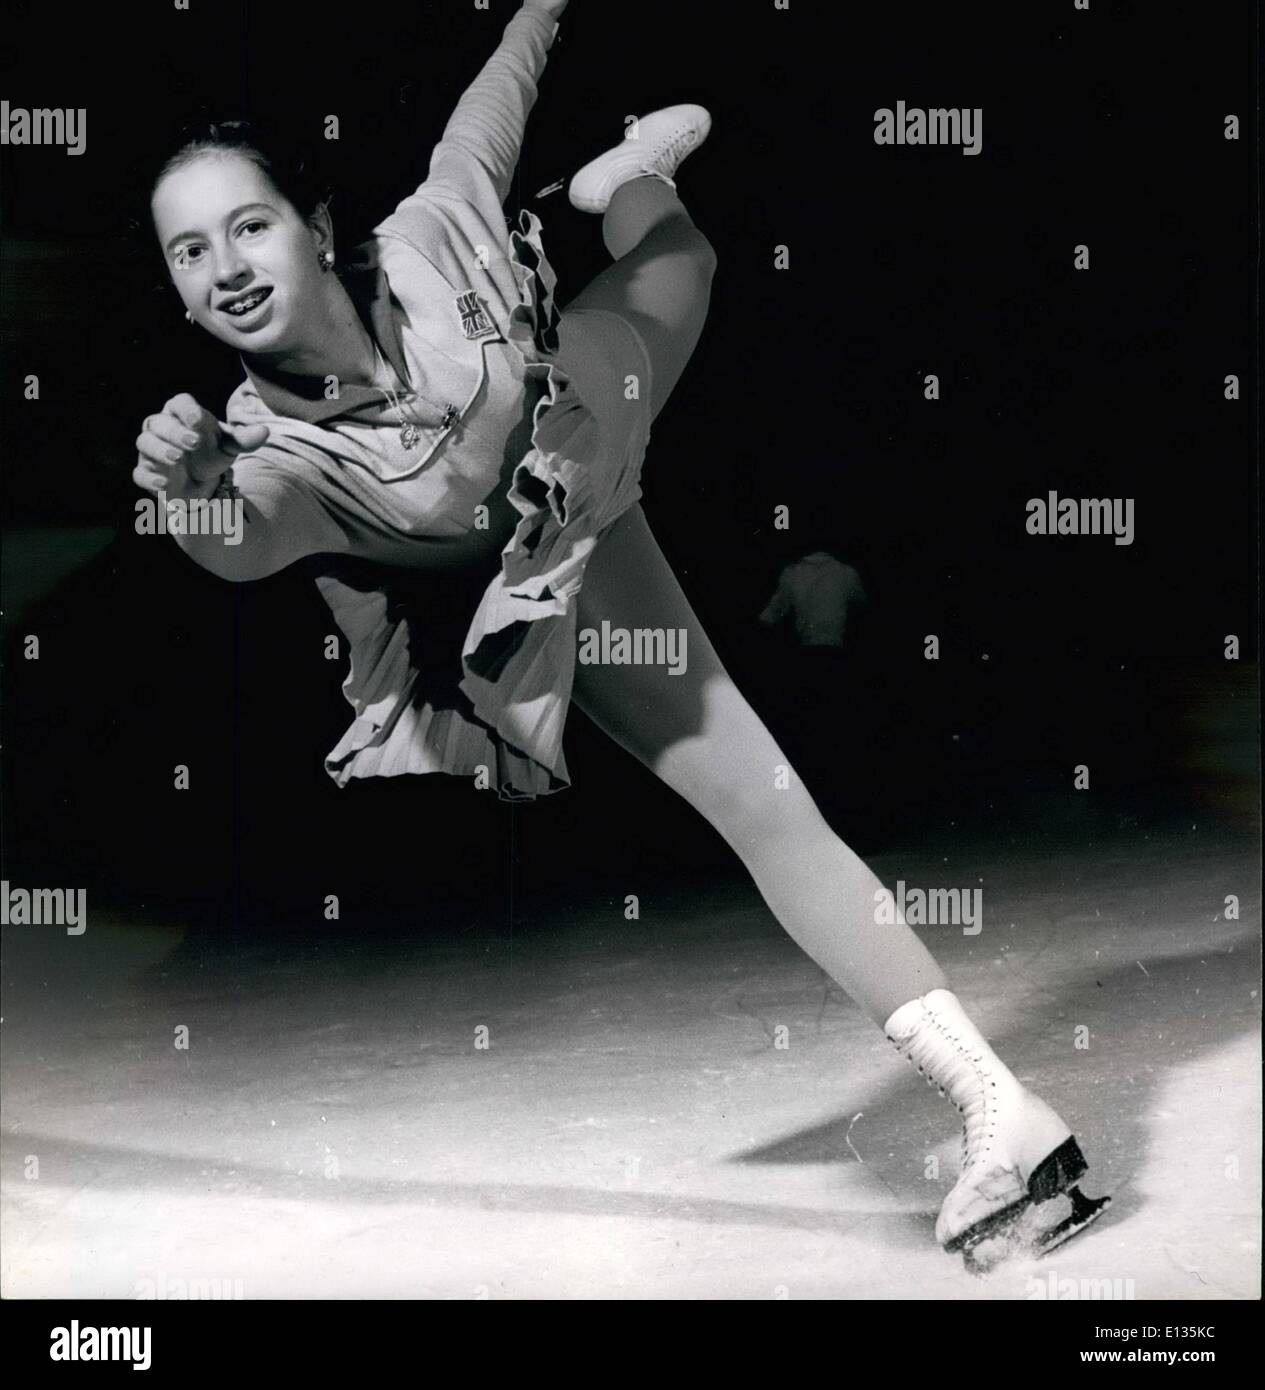 Feb. 28, 2012 - Grace on Ice Yvonne Sugden comes in at high speed. Sixteen years old champion on ice Yvonne spends many hours each day practicing and keeping her body supple and in trim for such feats as this which will bring for England, and herself fresh laurels. - Stock Image